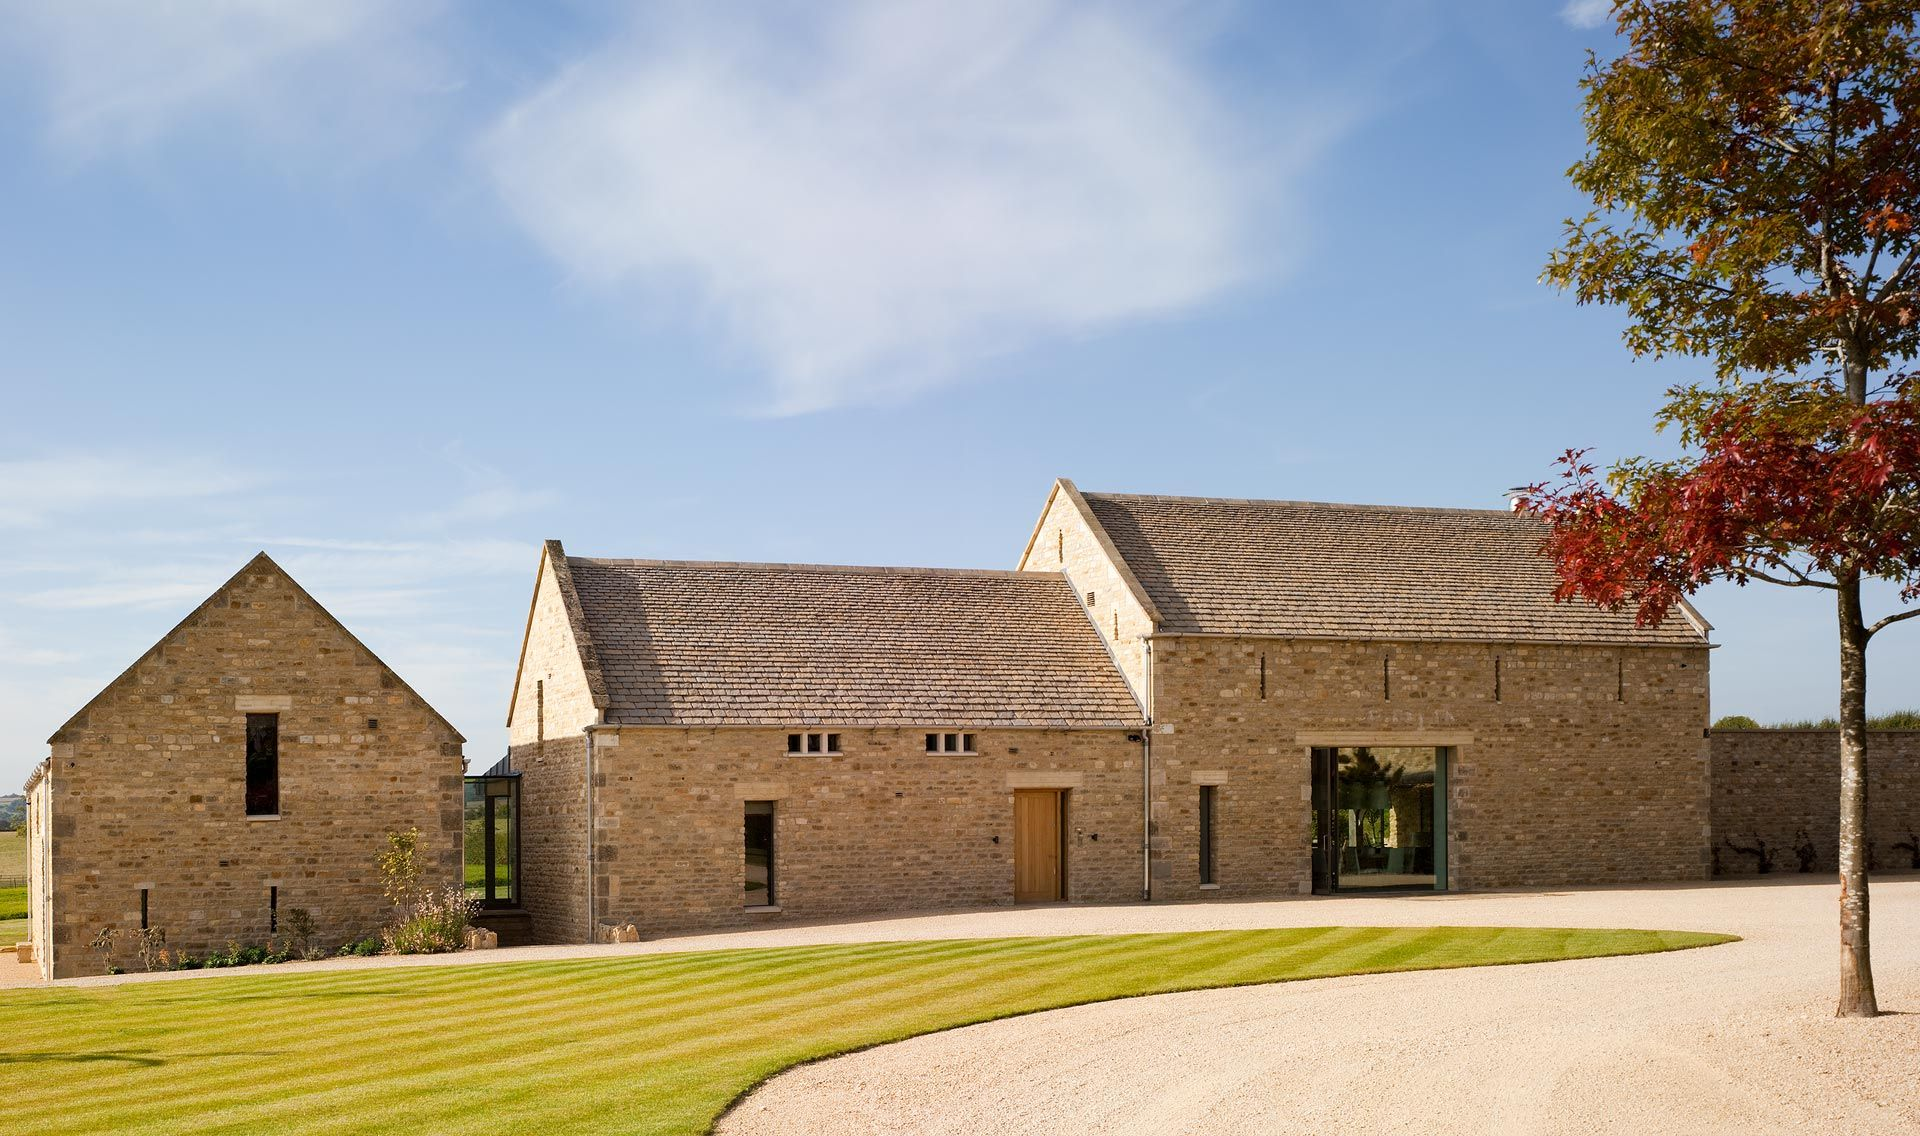 Converted Barn Homes Beautiful Old Stone Conversion In Cotswold By McLean Quinlan Architects